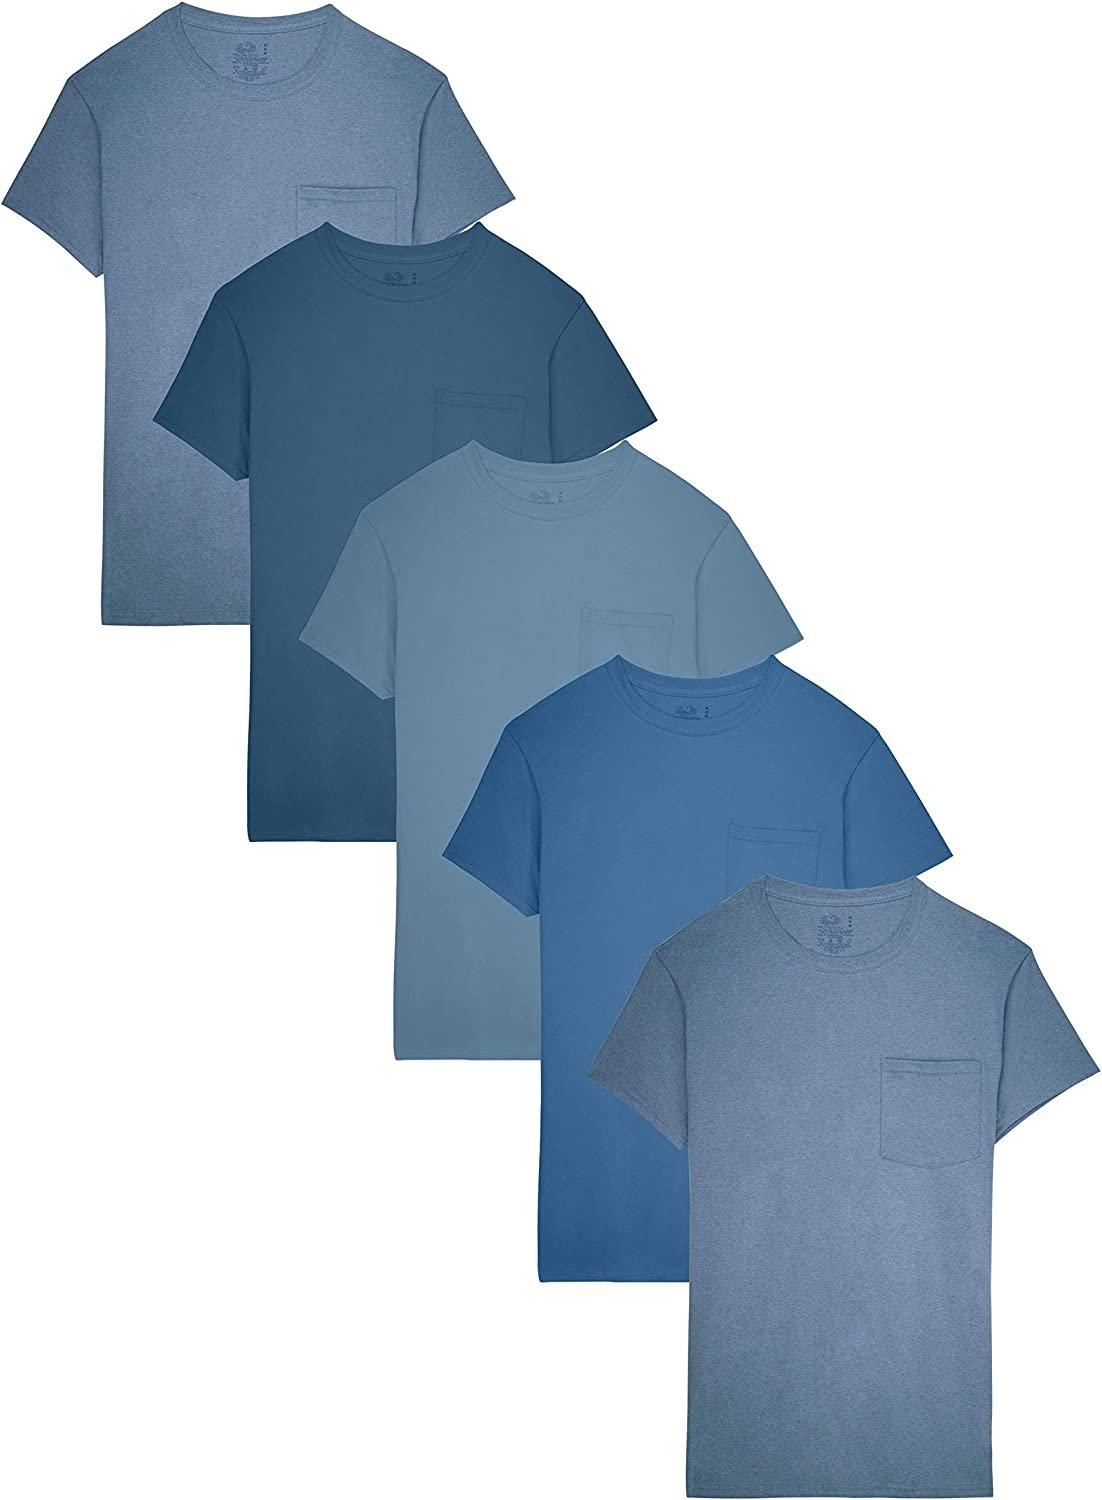 Fruit of the Loom Mens Pocket T-Shirt Multipack